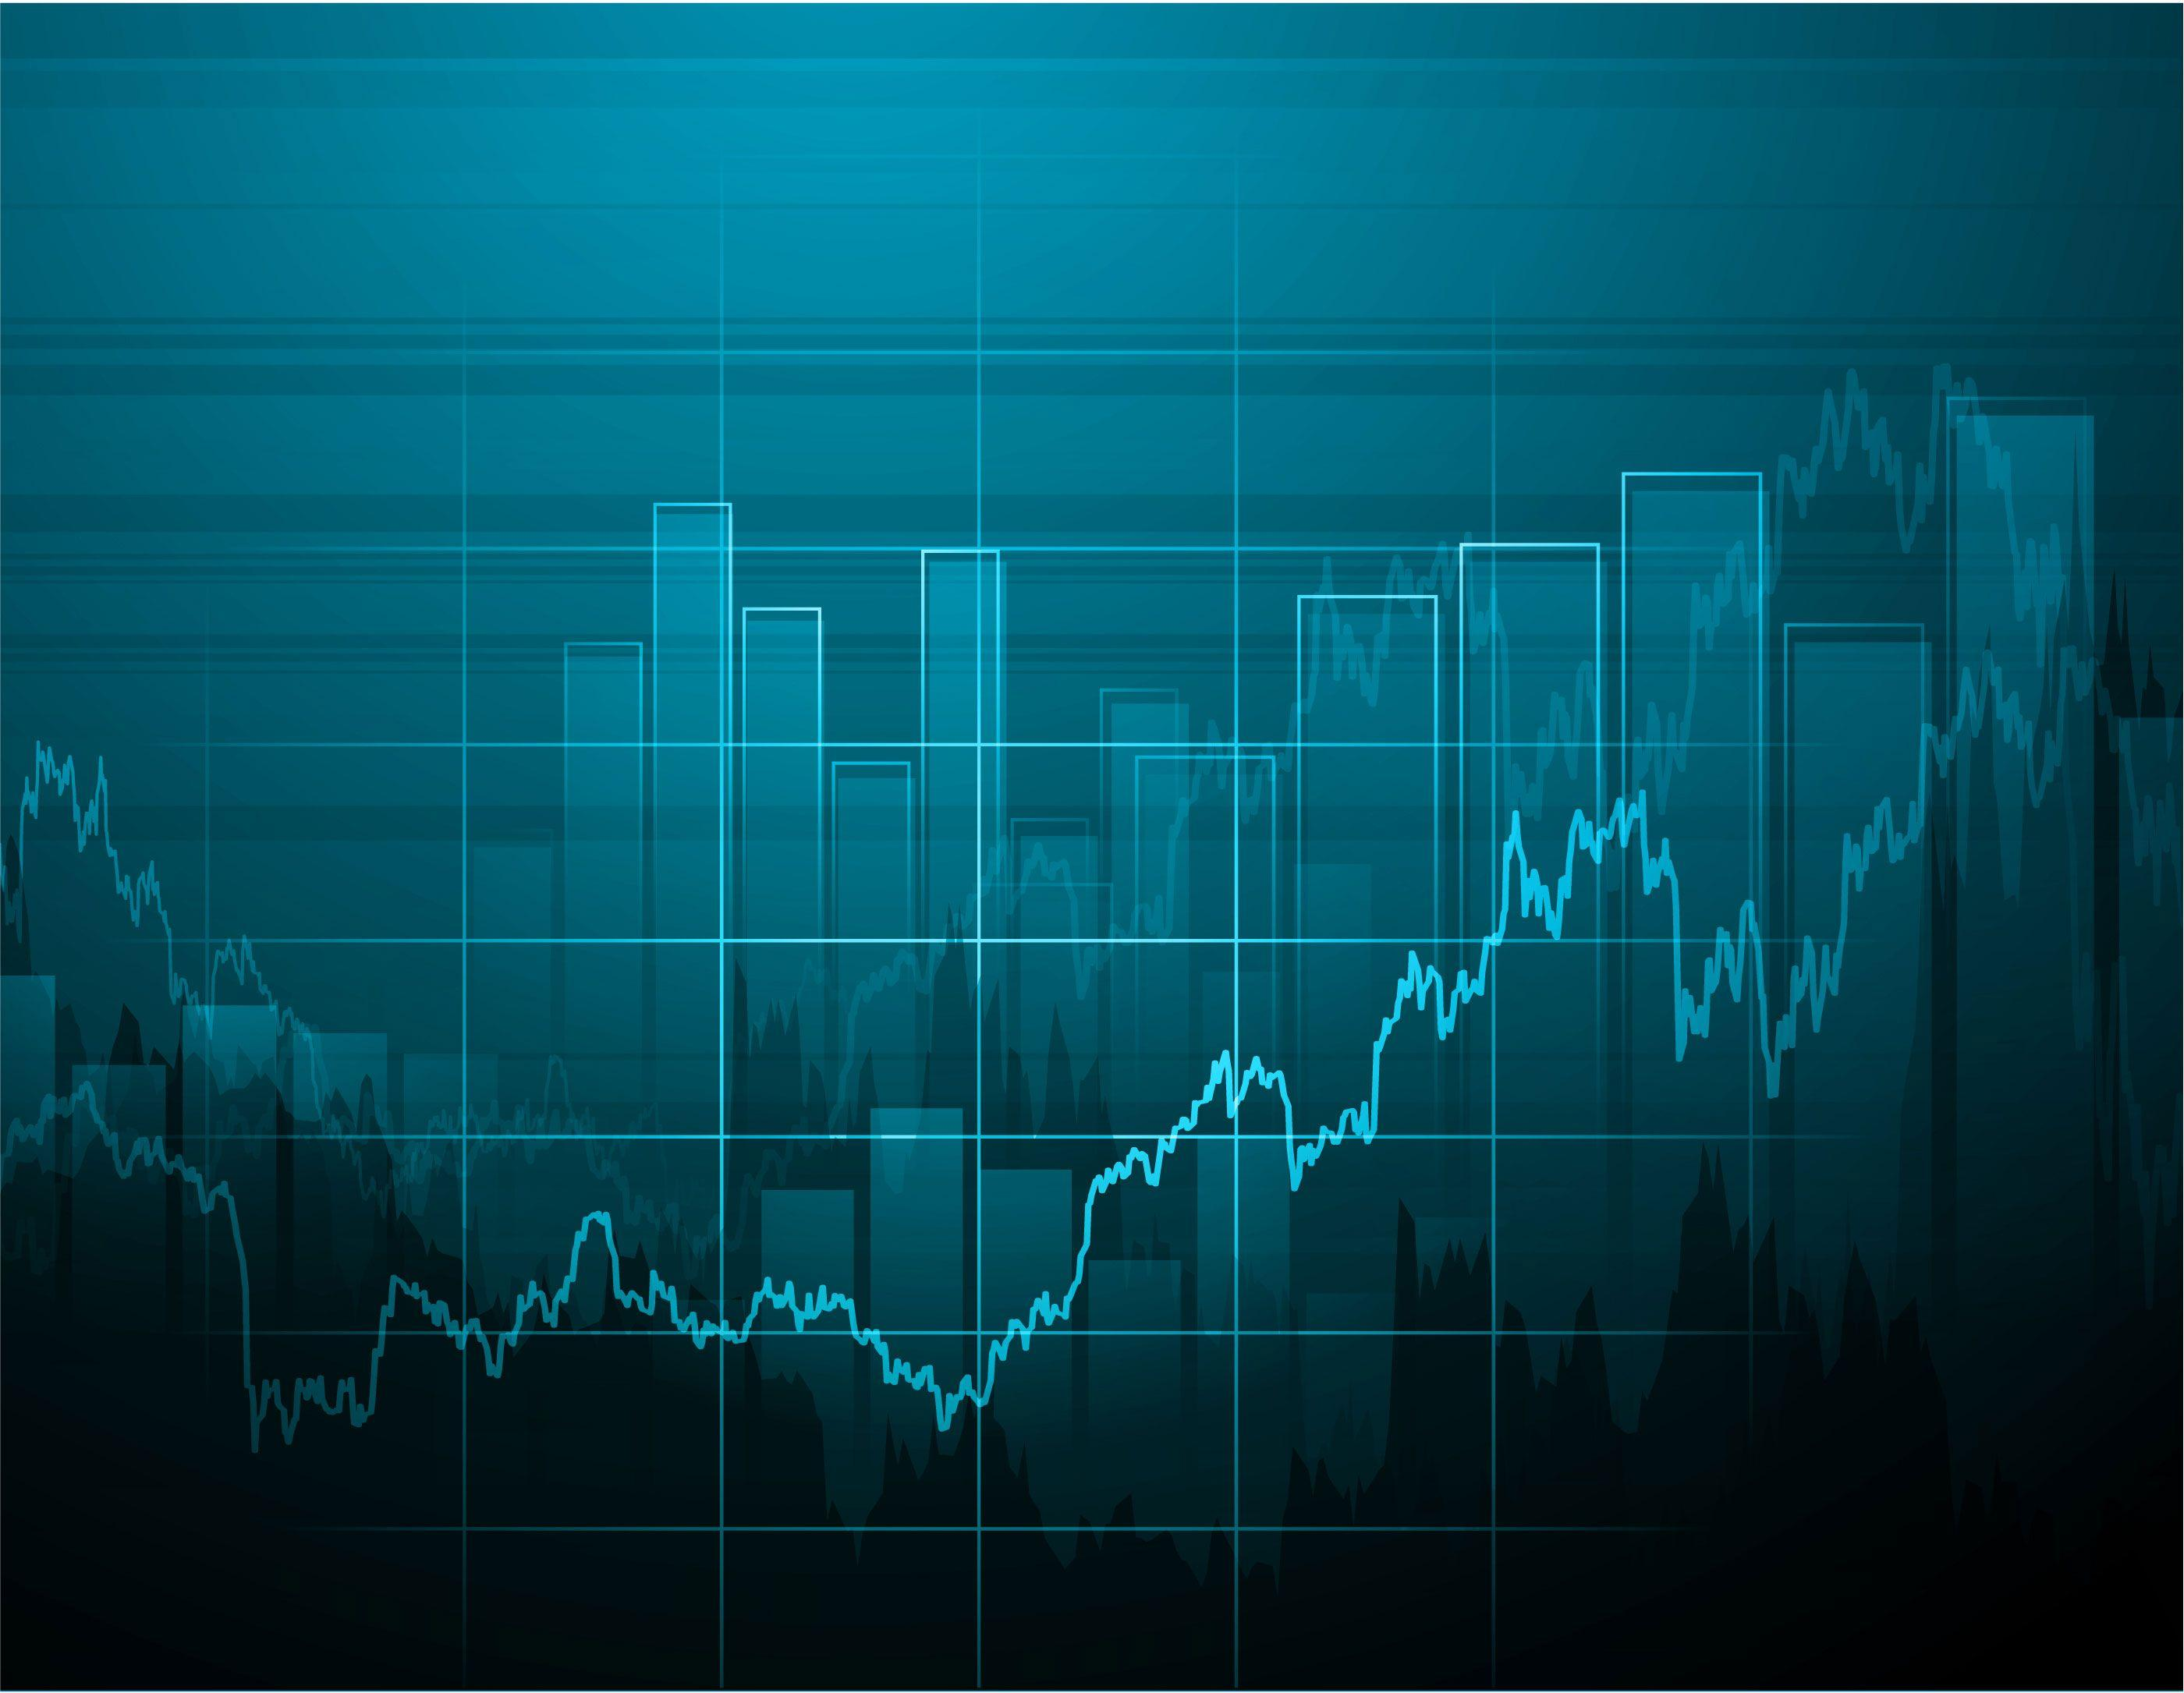 Stock market wallpapers wallpaper cave for Stock market ppt templates free download